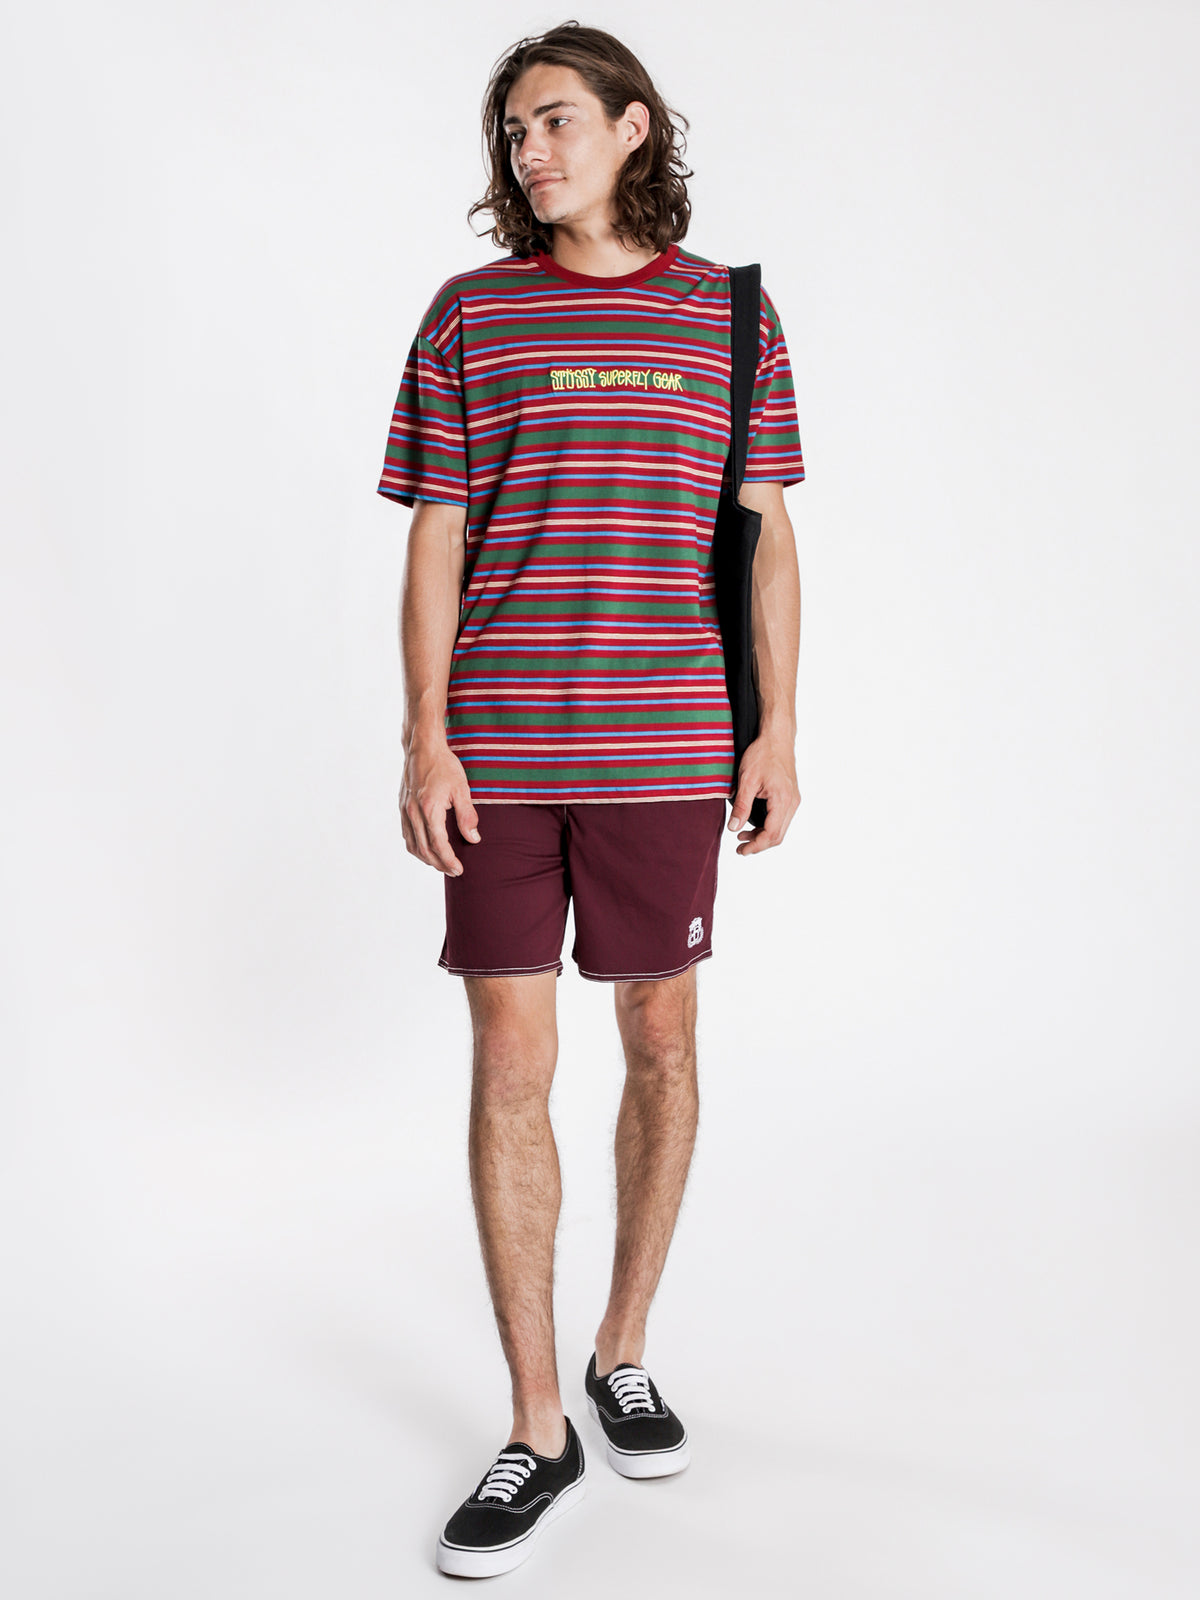 Undone Short Sleeve T-Shirt in Plum